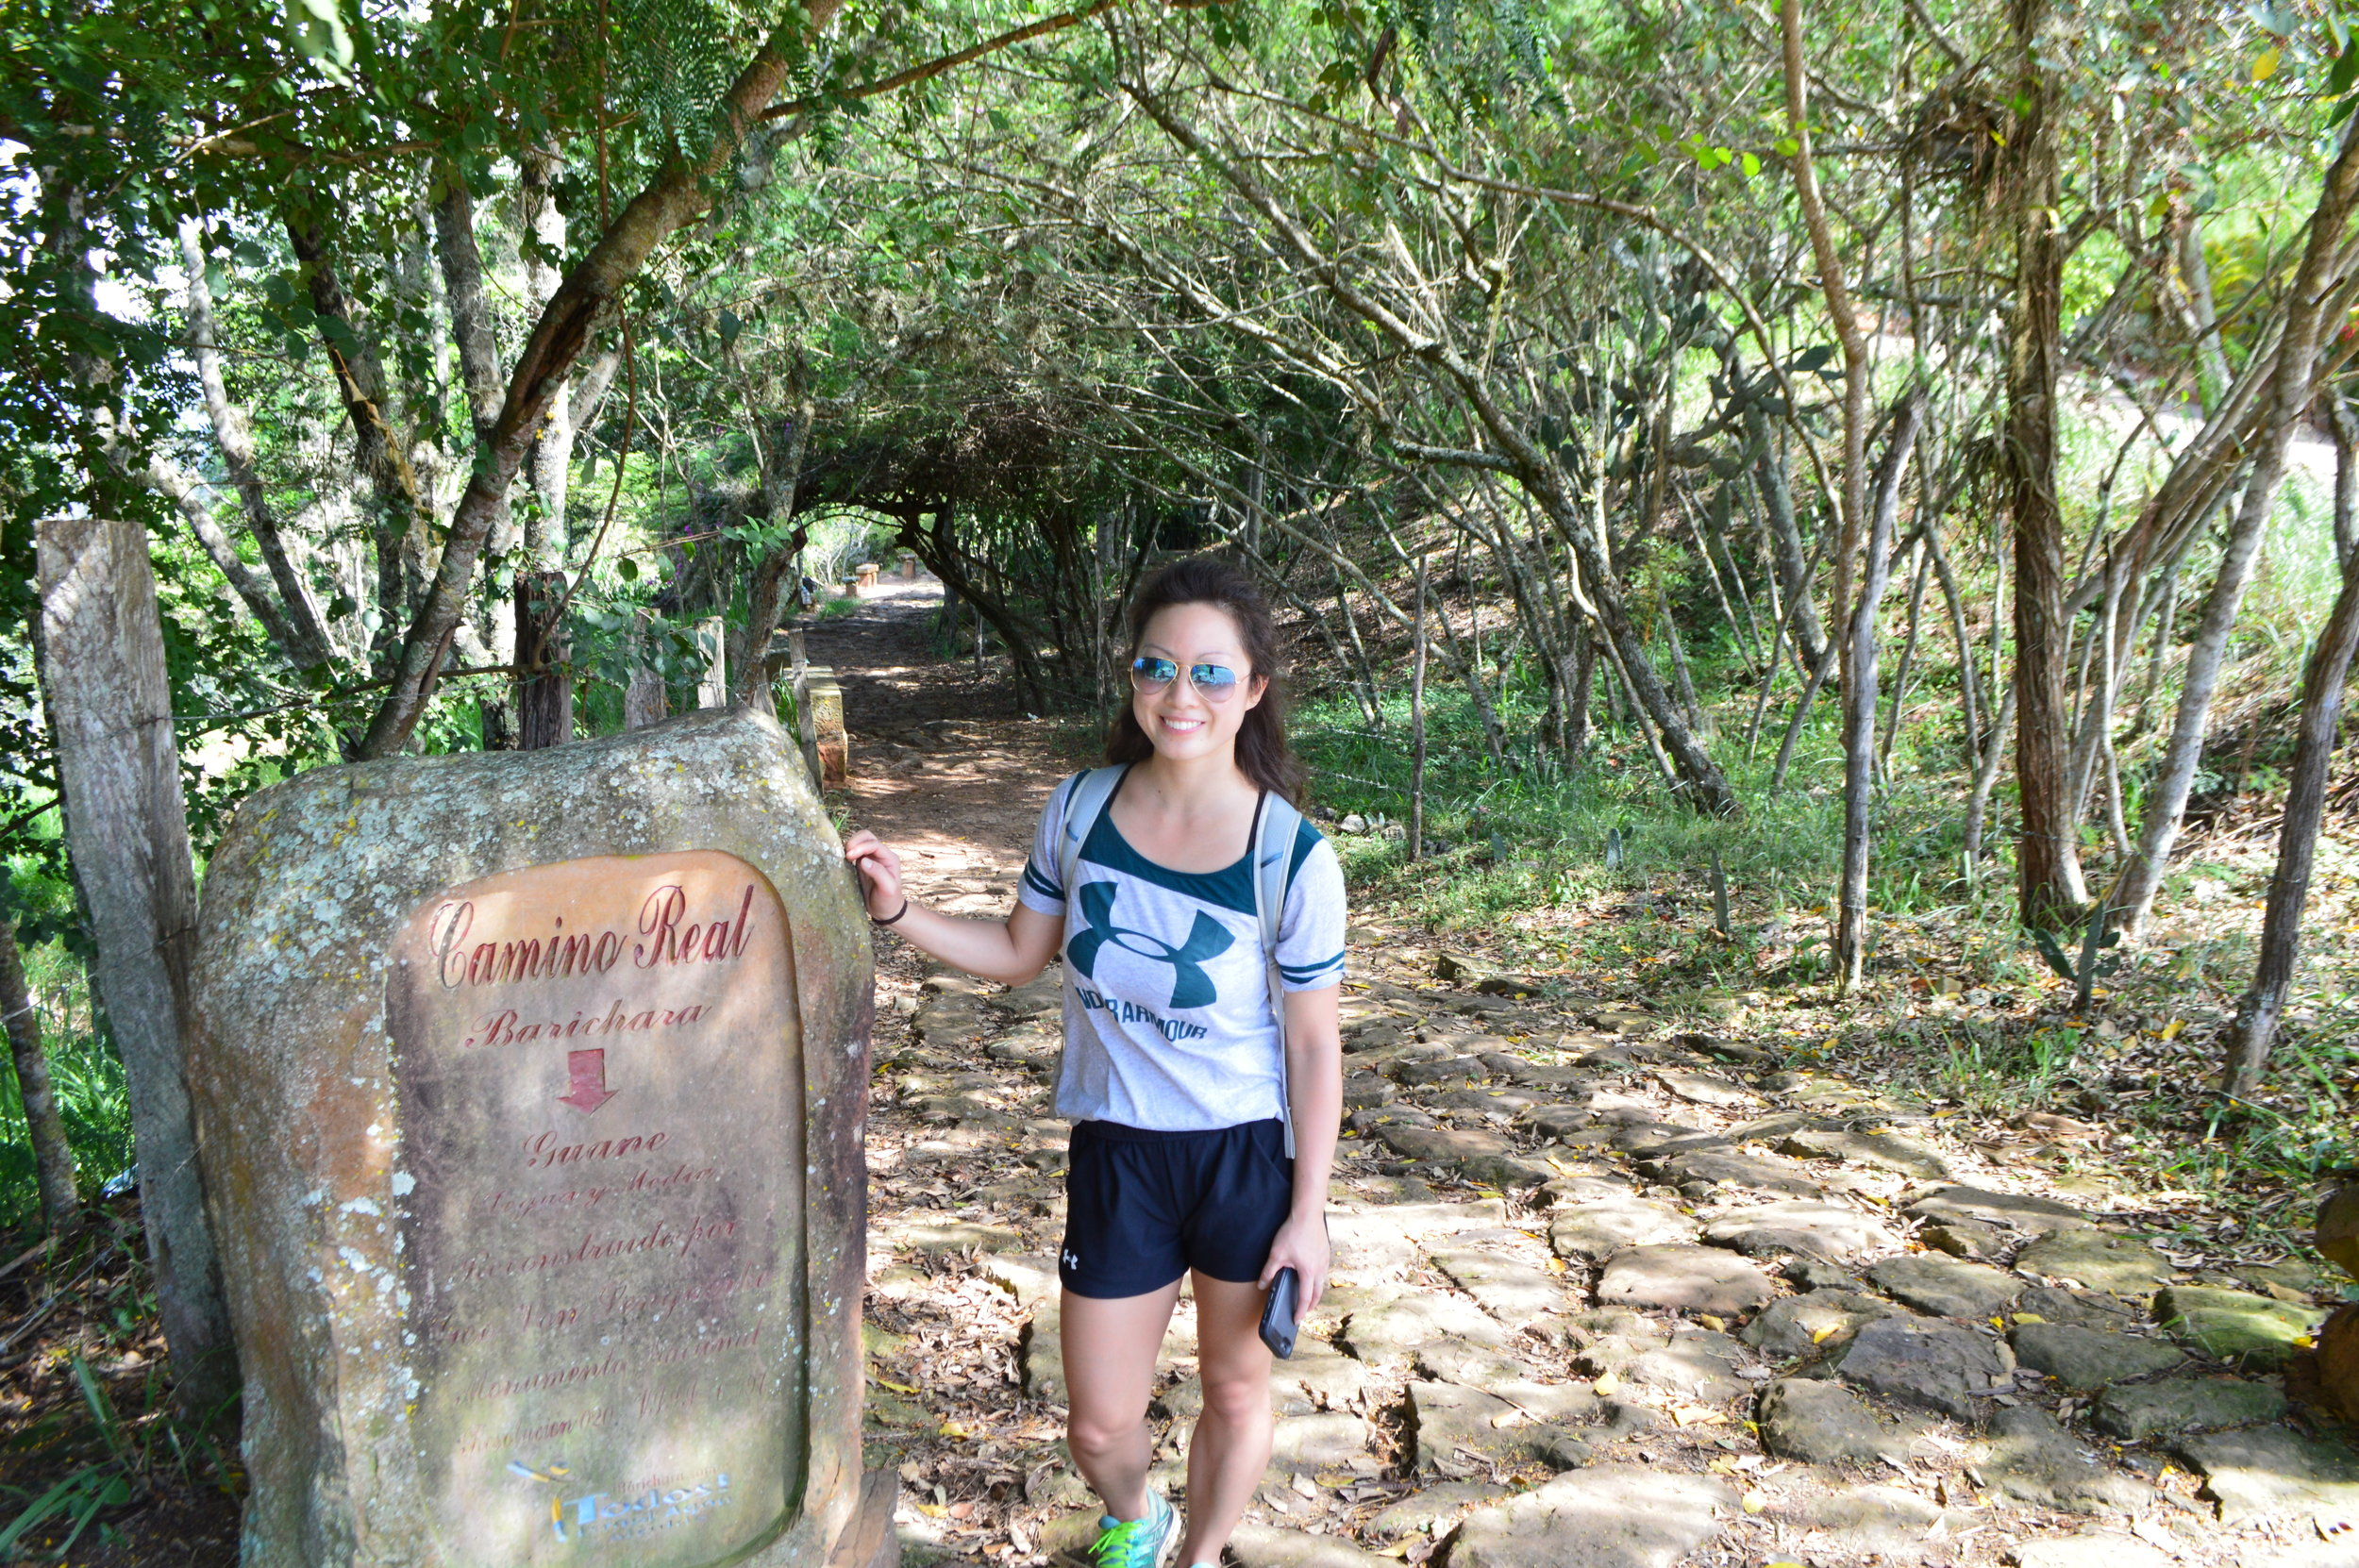 Camino Real trailhead from Barichara to Guane